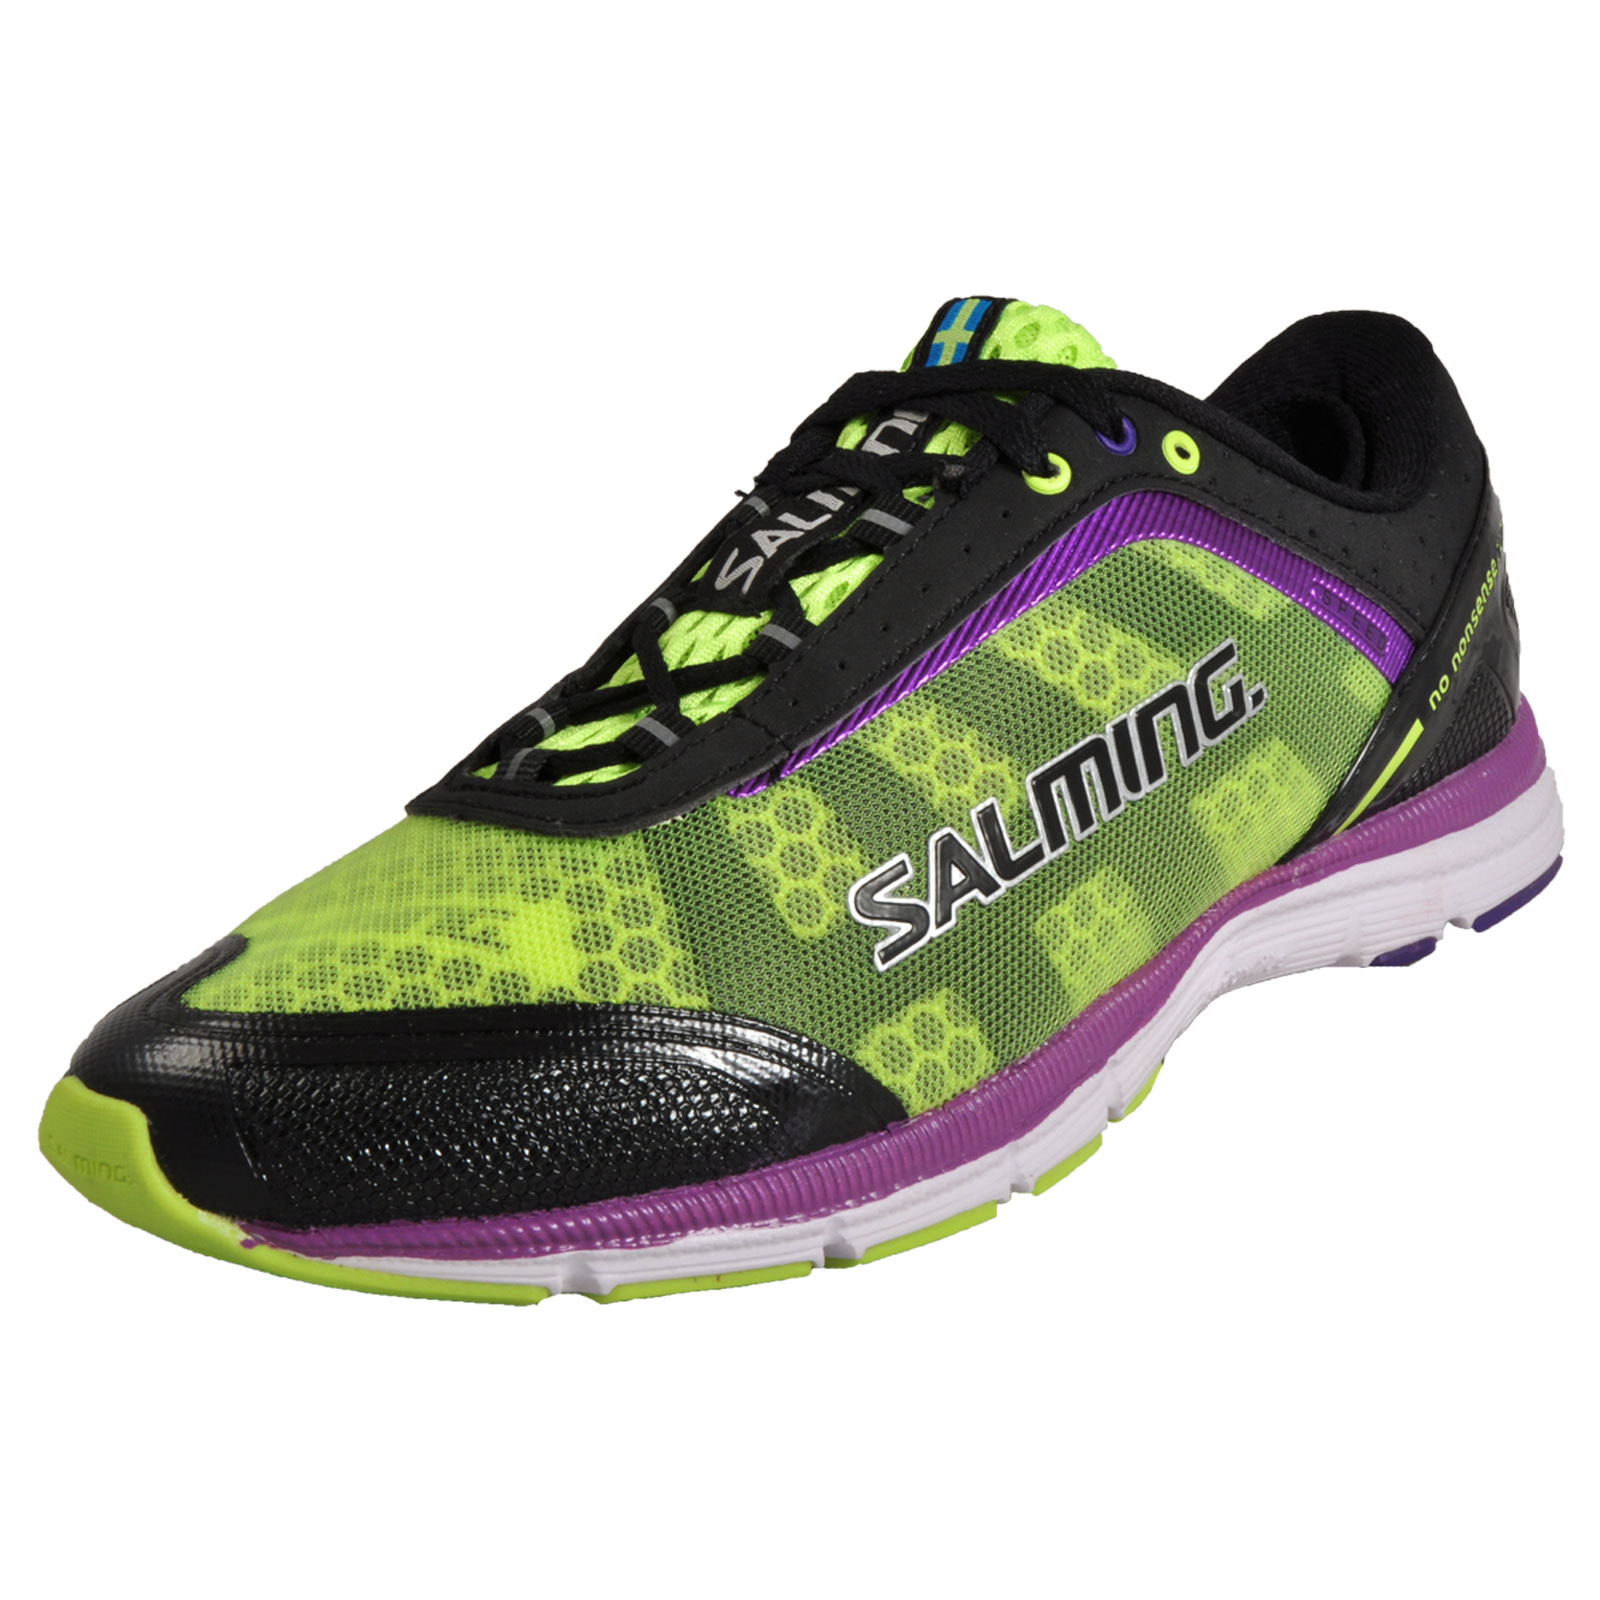 Salming Speed S1 Womens Premium Running Shoes Fitness Gym Trainers Black / Yello